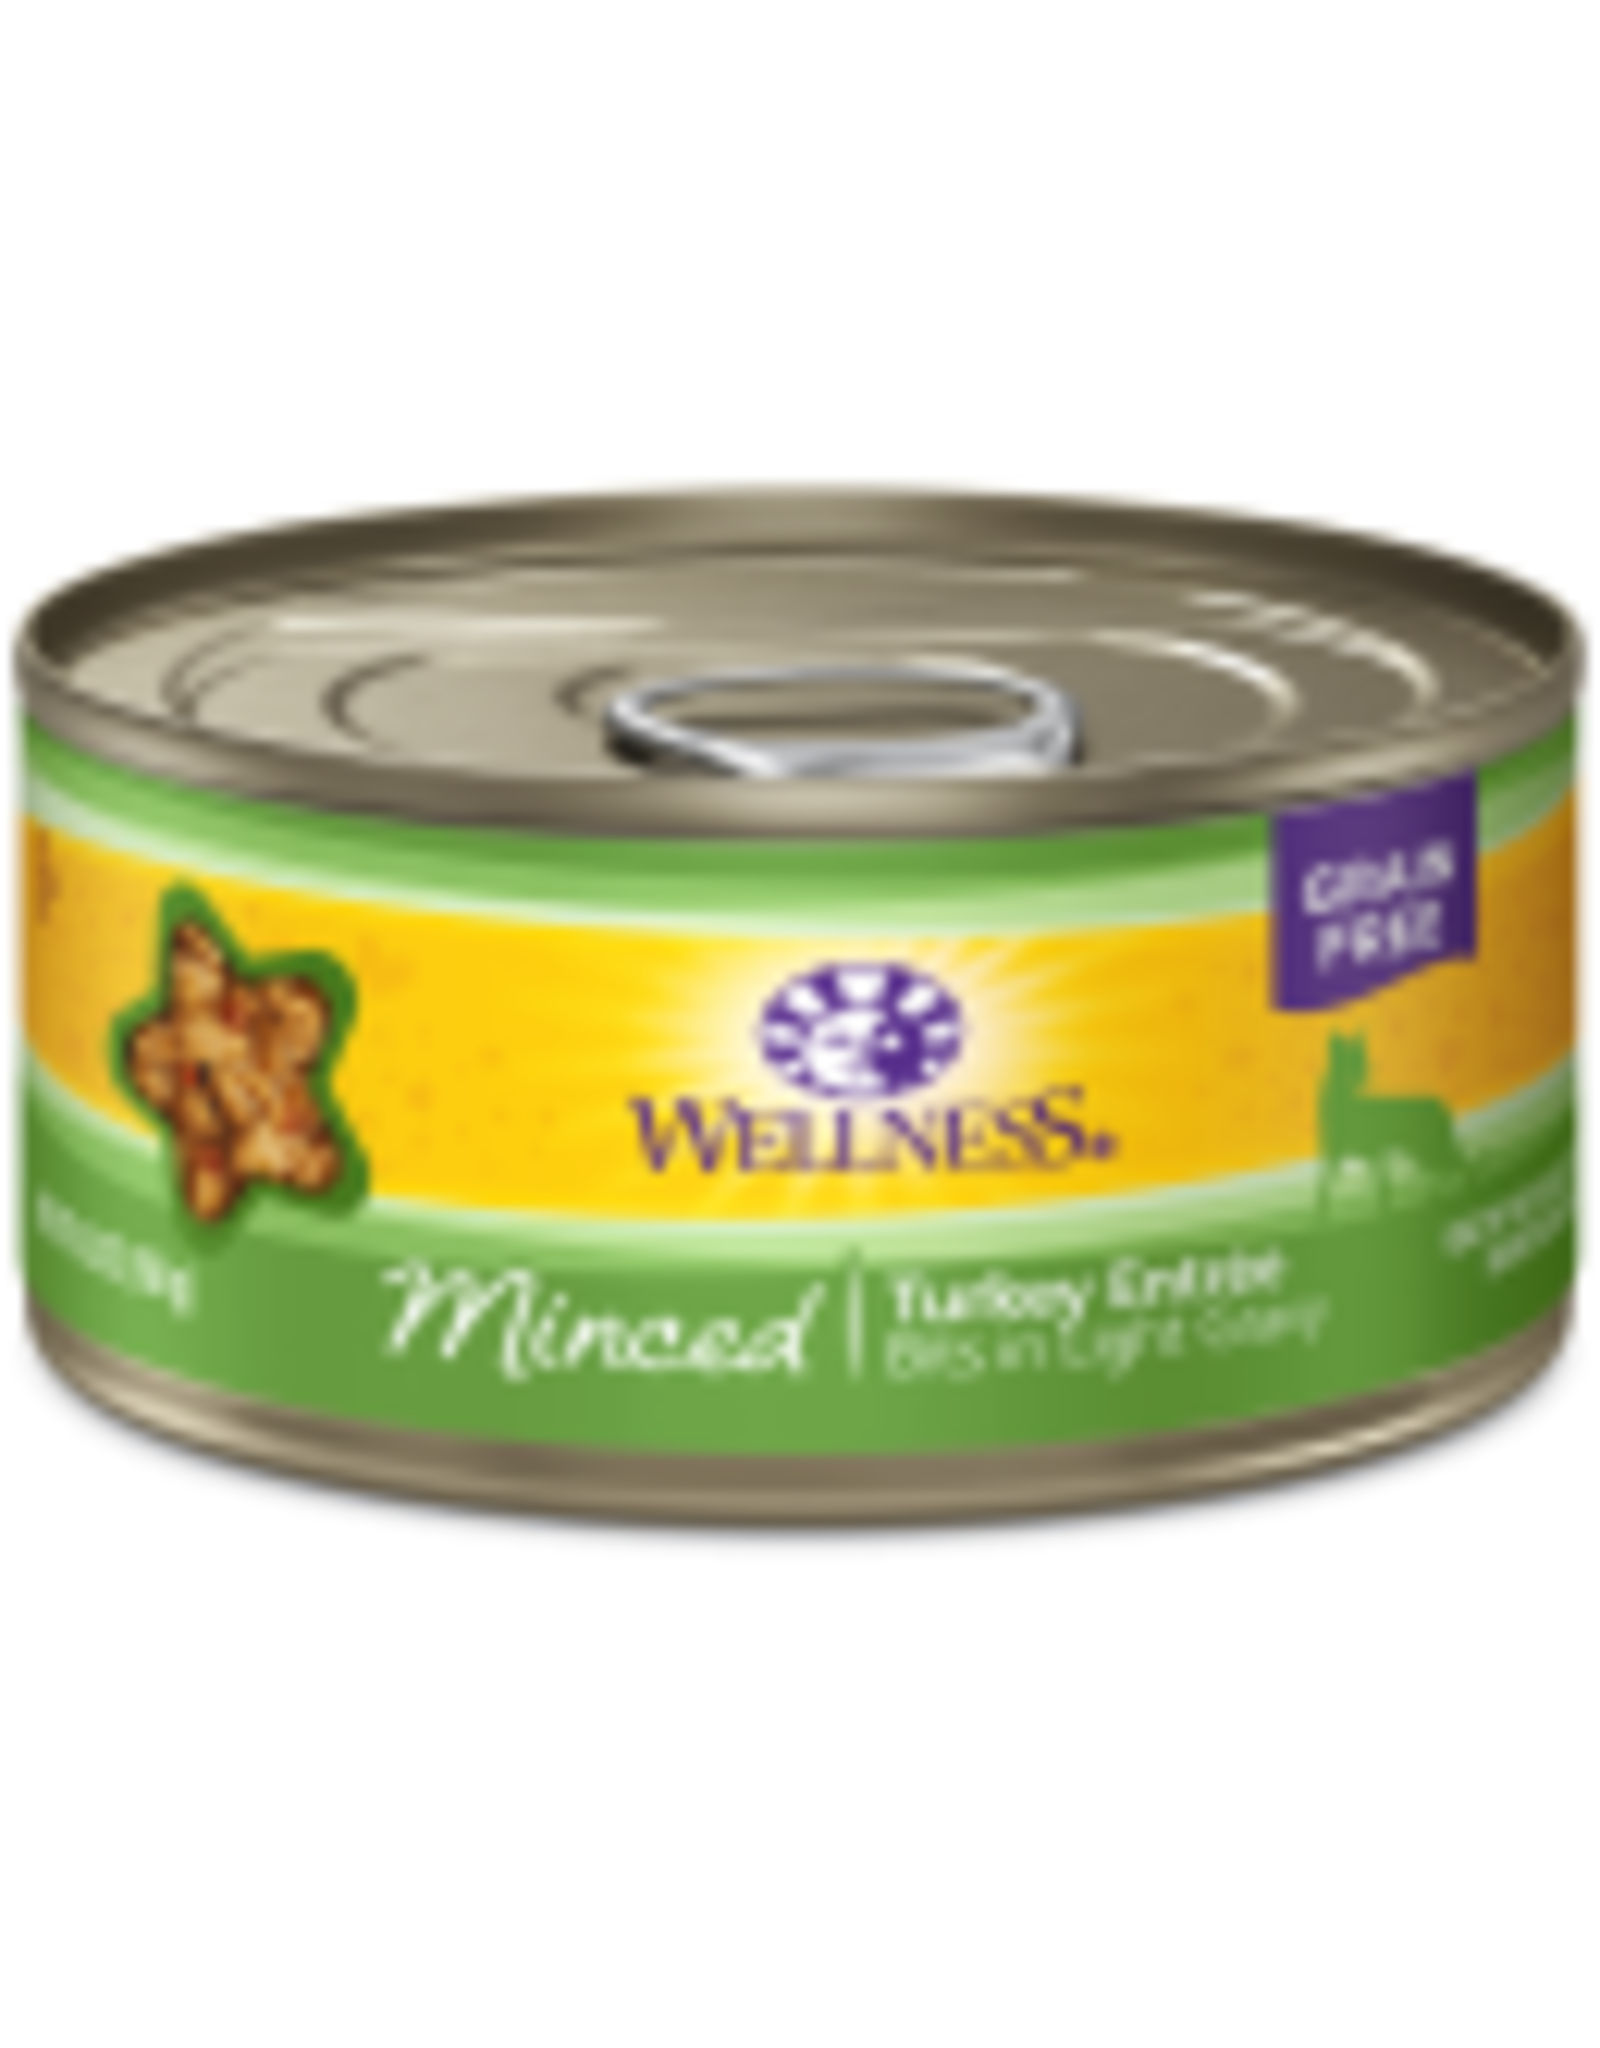 Wellness Wellness Feline Minced Turkey 5.5oz